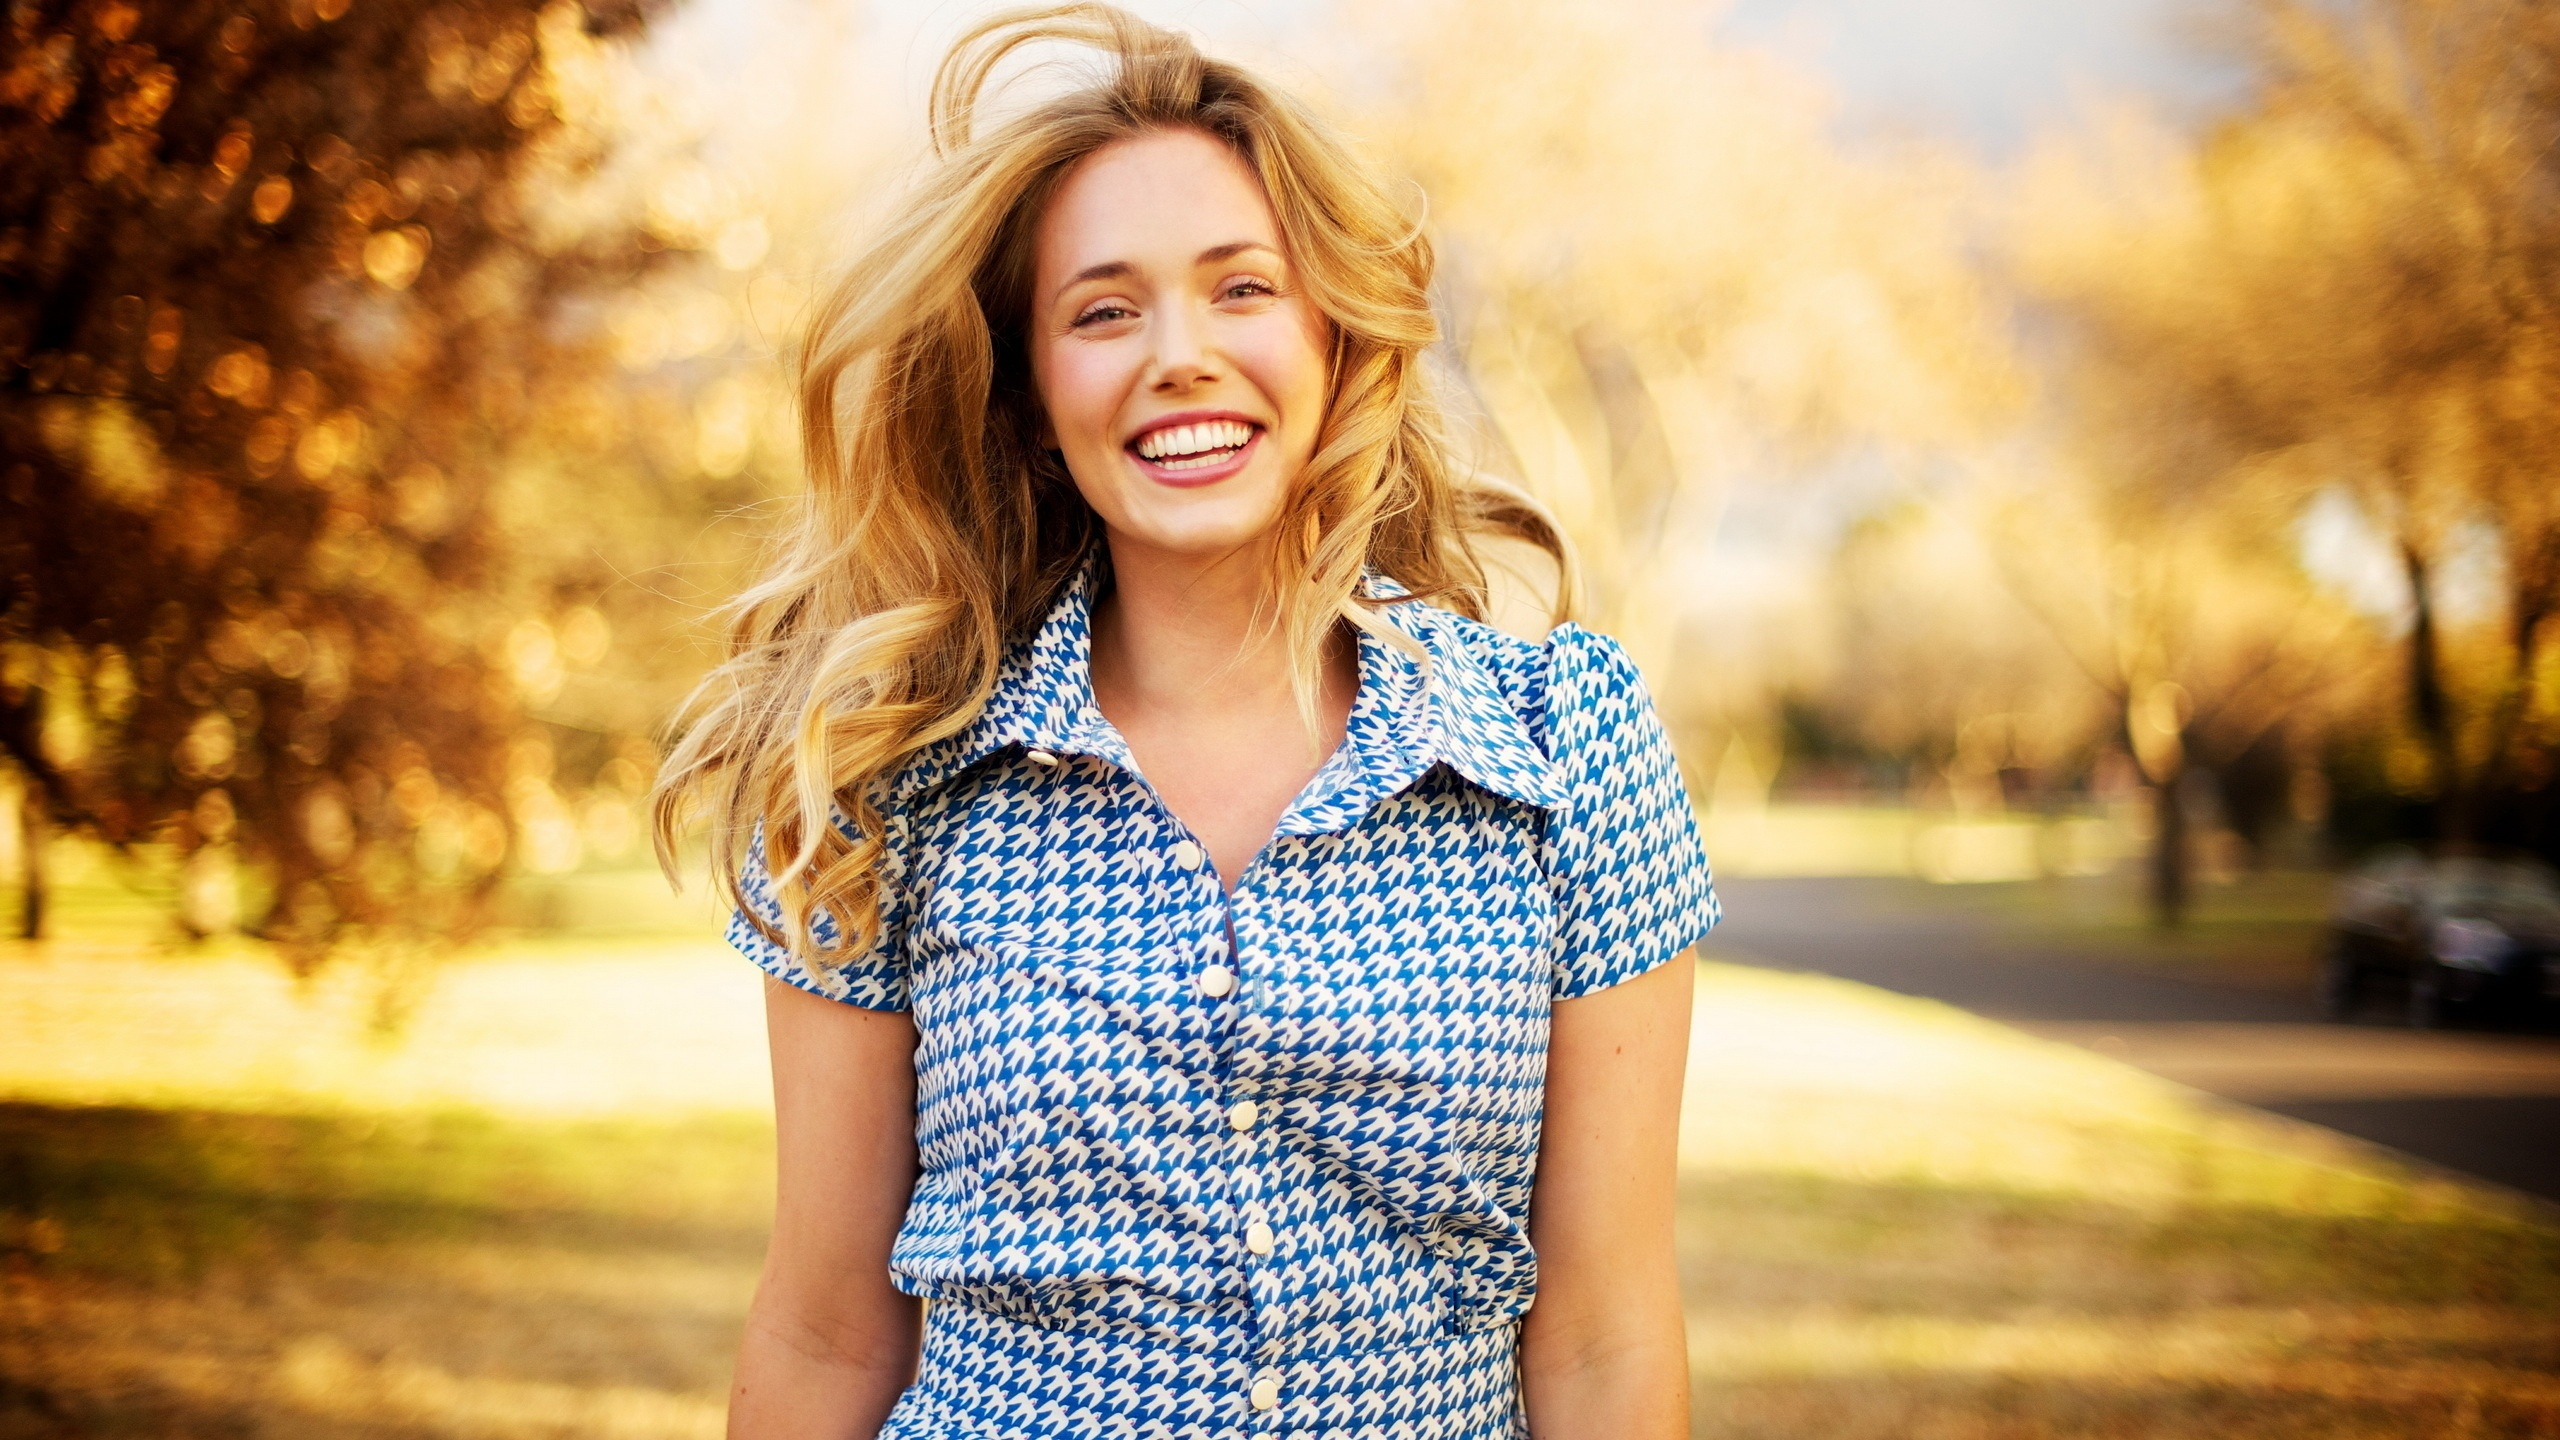 happy-woman-with-beautiful-smile